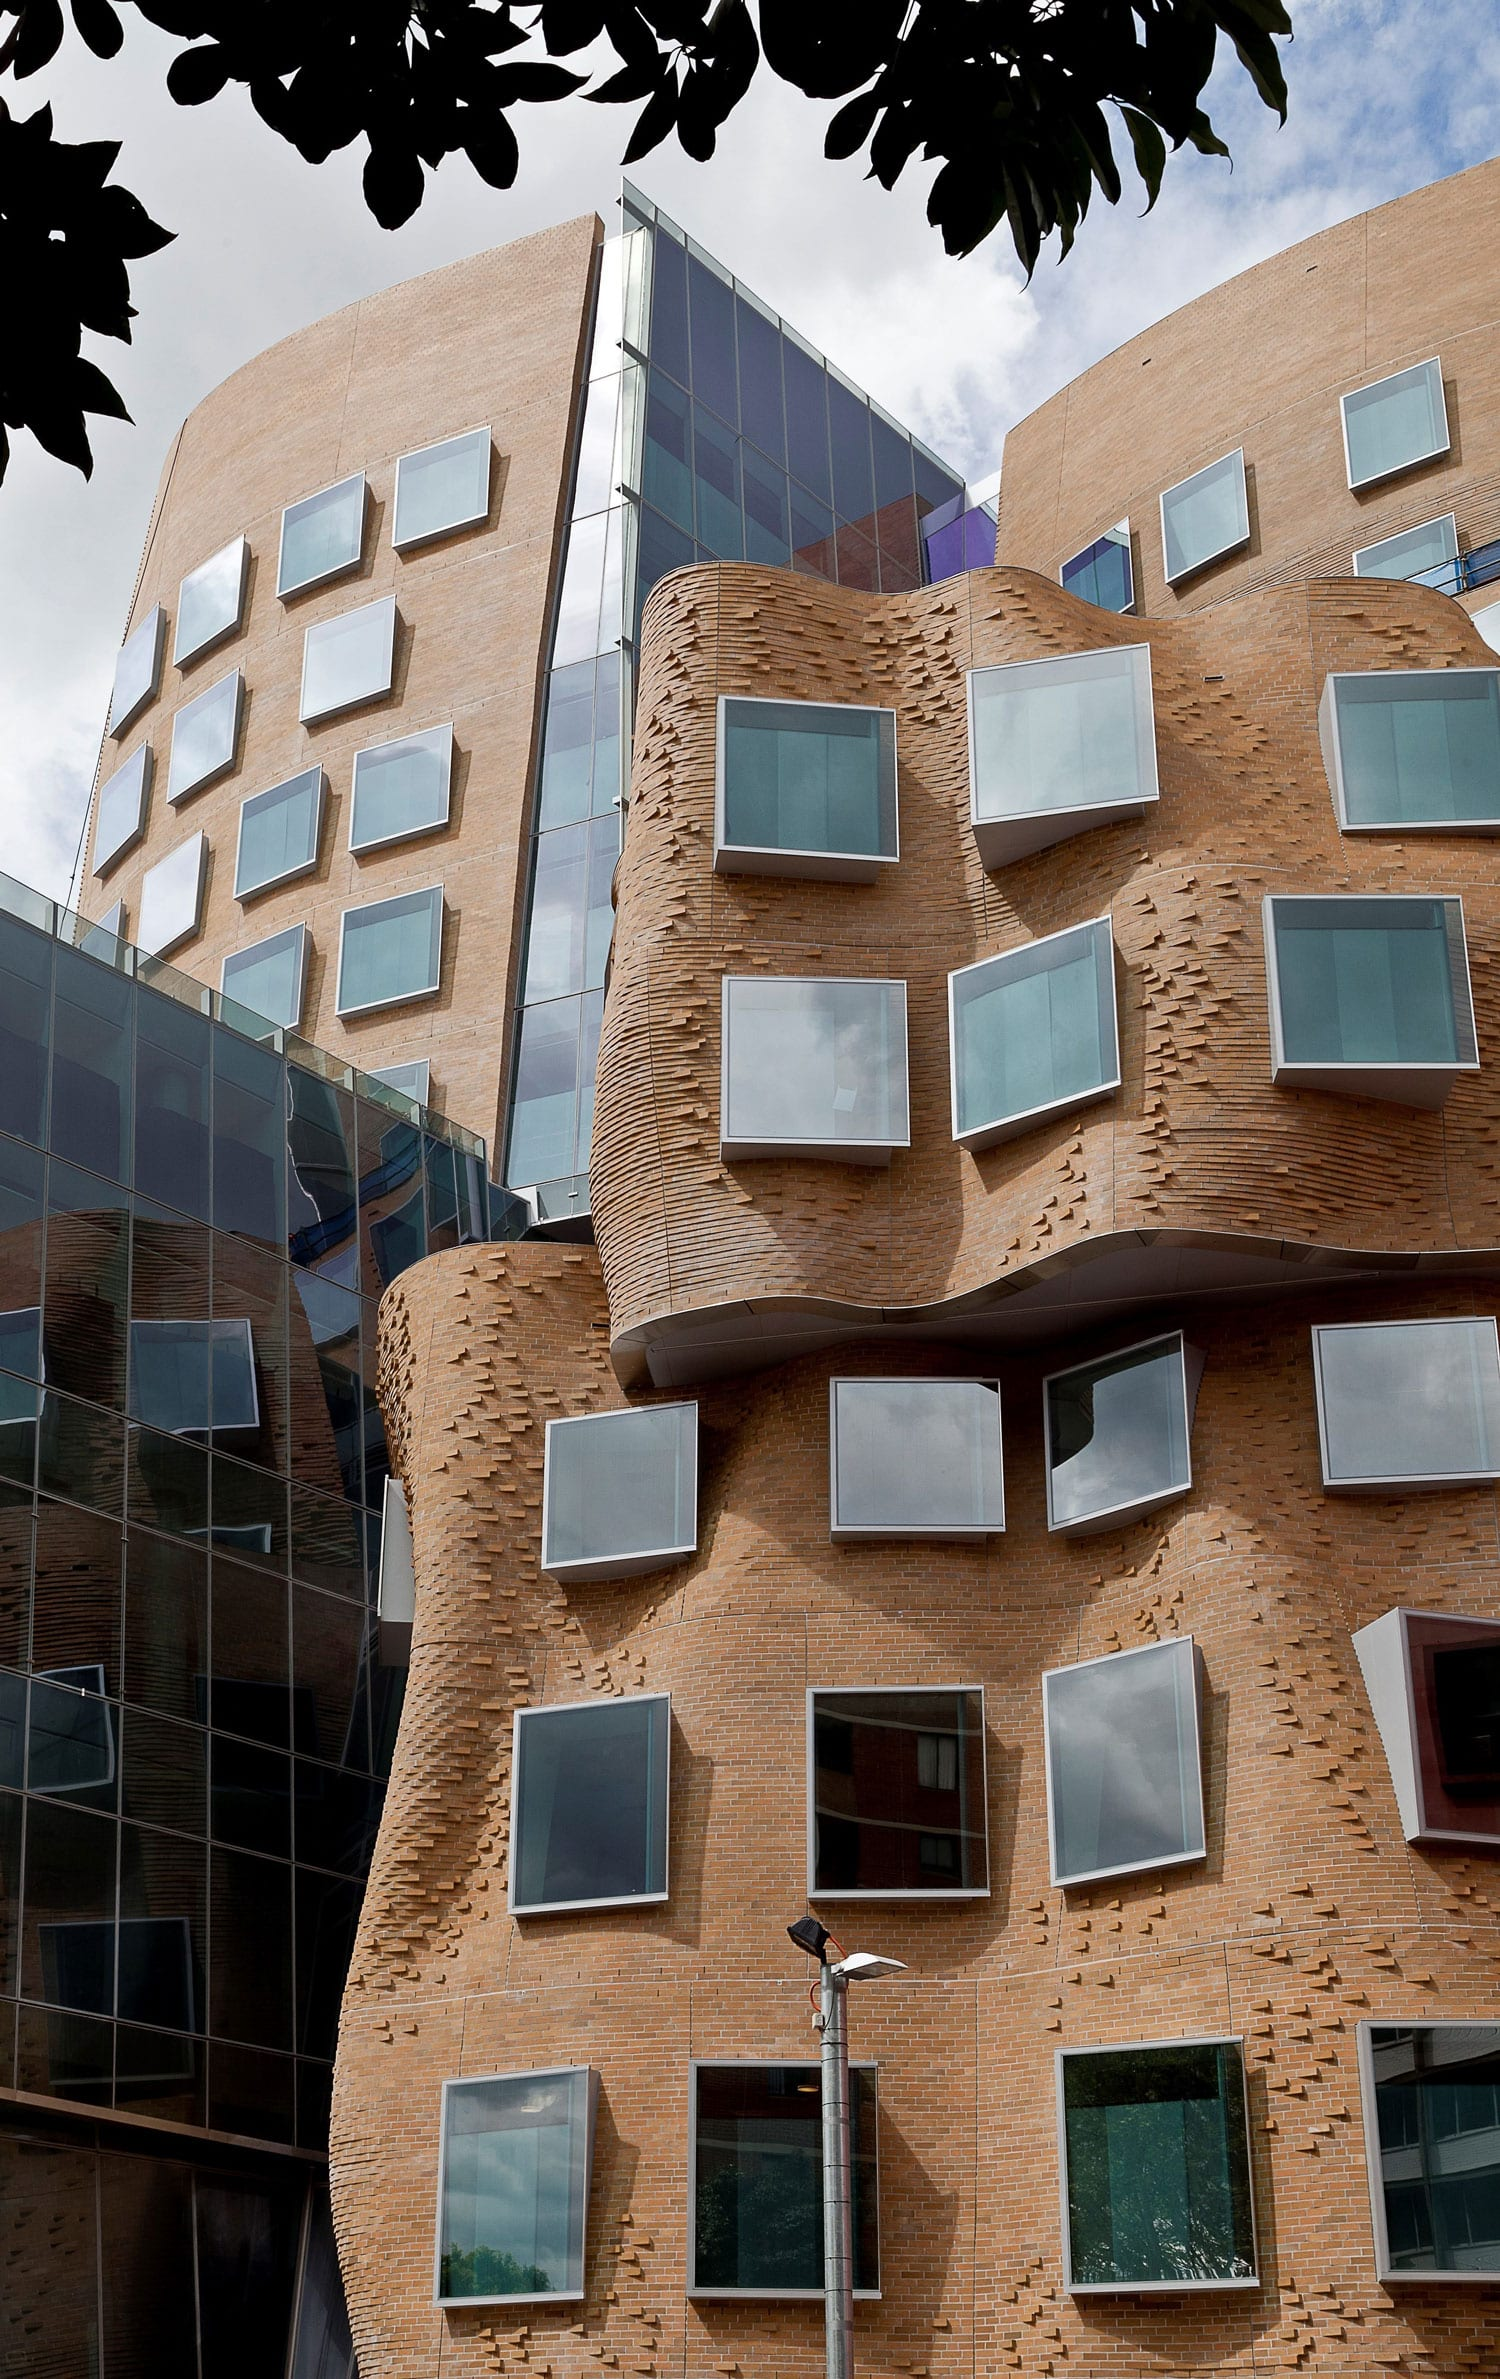 Bricks decoded curved brick buildings curated by Bricks sydney